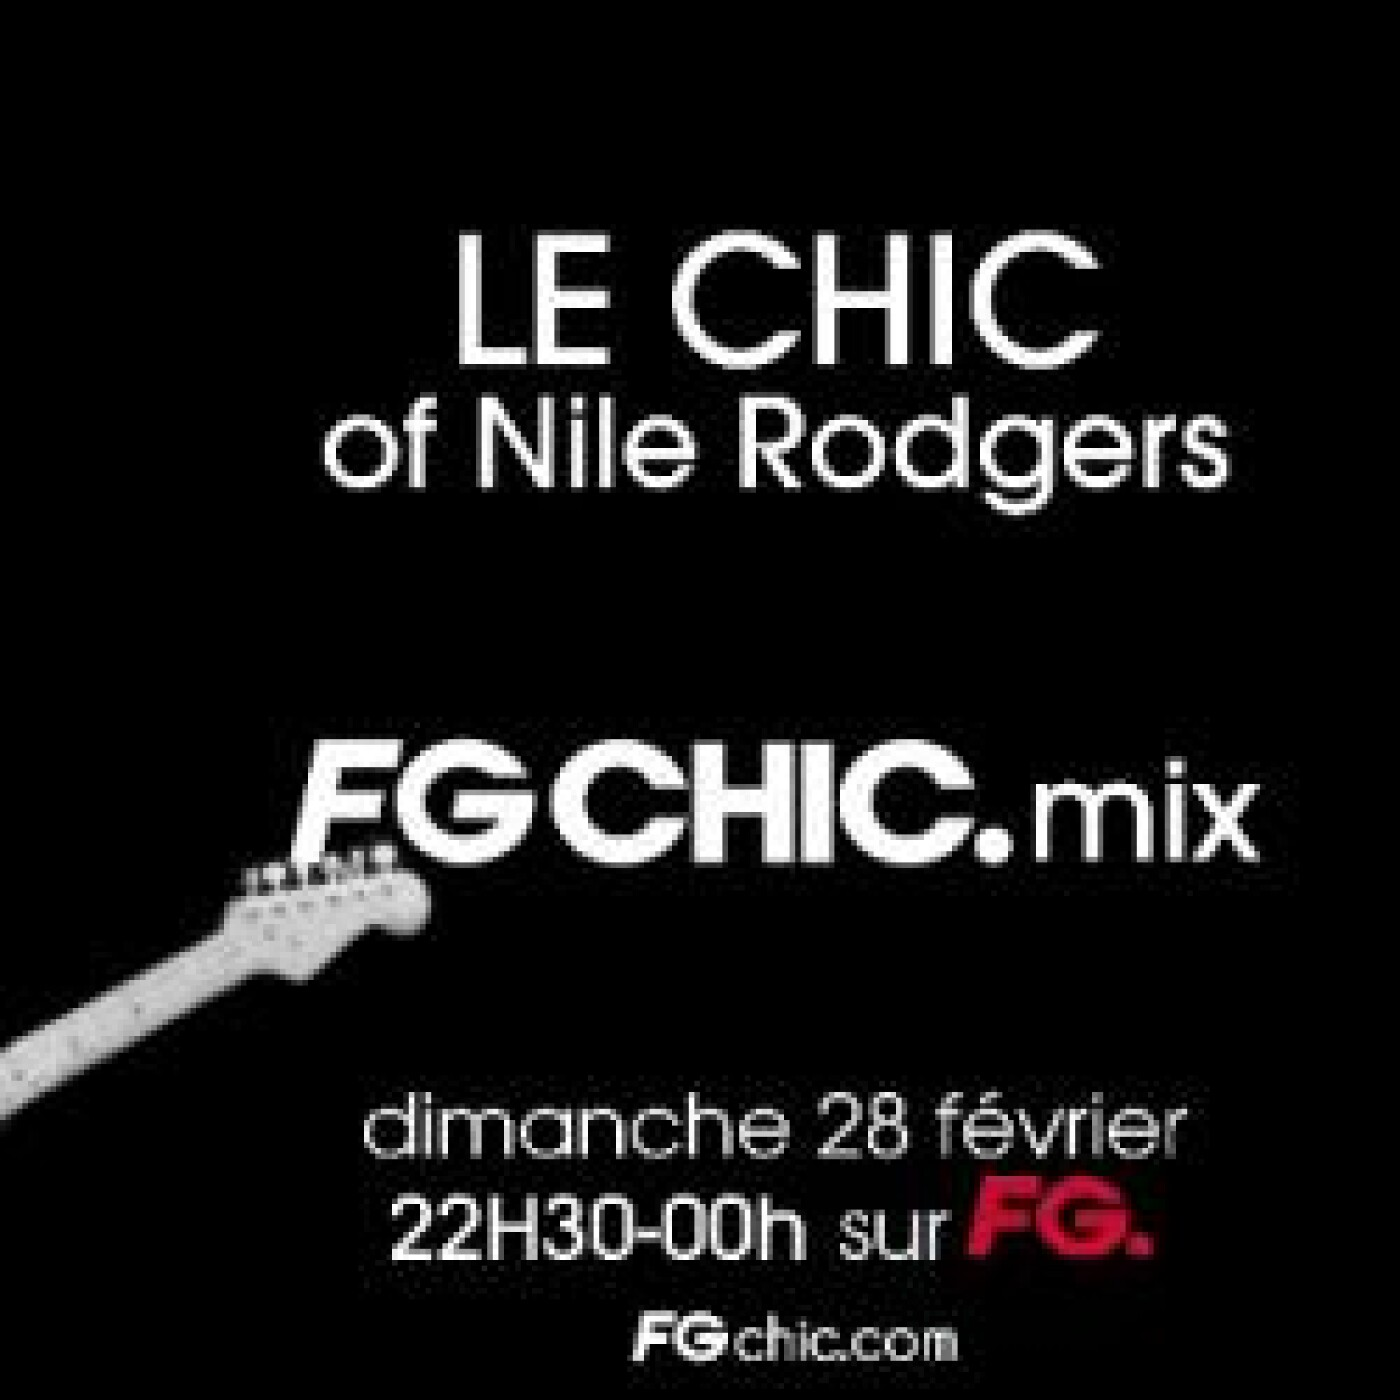 FG CHIC MIX OF NILE RODGERS